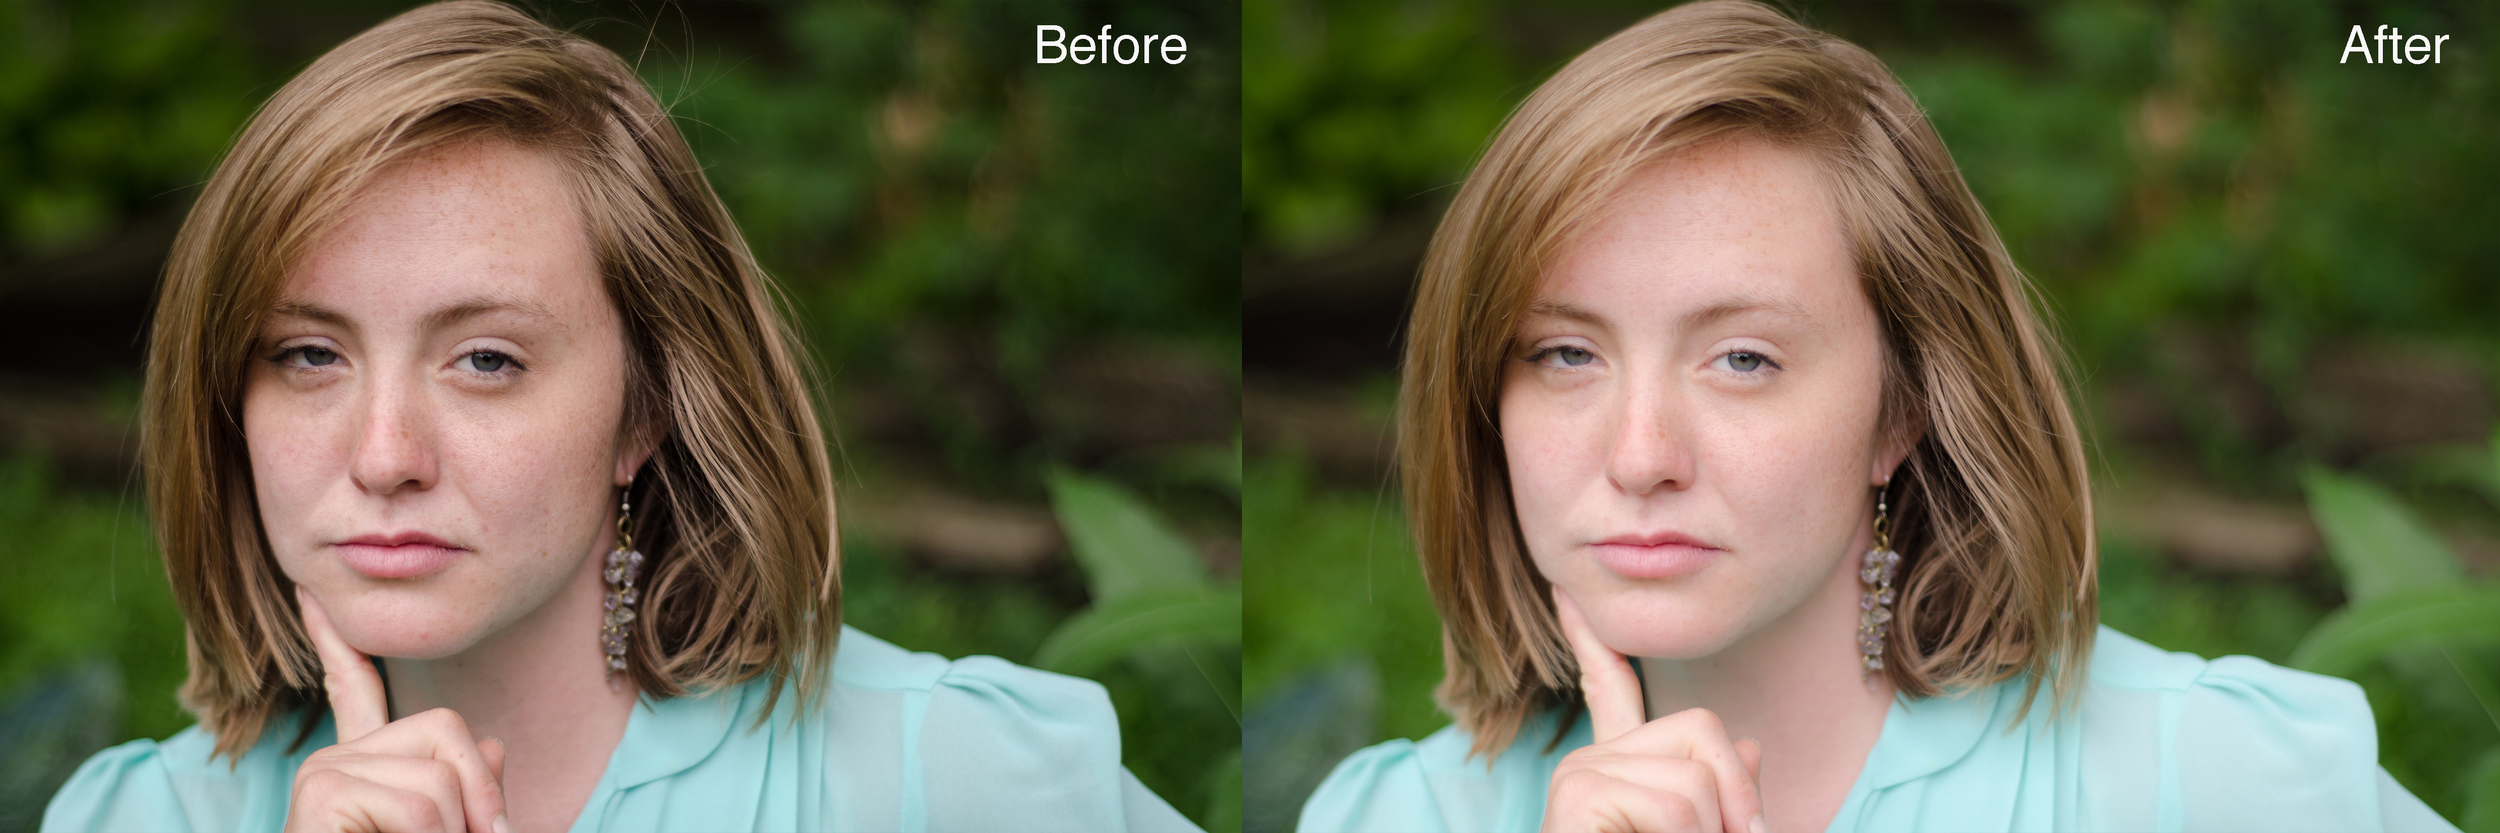 Image on Left: Overall Darker, conveying shadows along on the subjects face, skin blemishs, and low contrasting tones.    Image on Right: Face is brighter, tones are richer, skin is smoother.